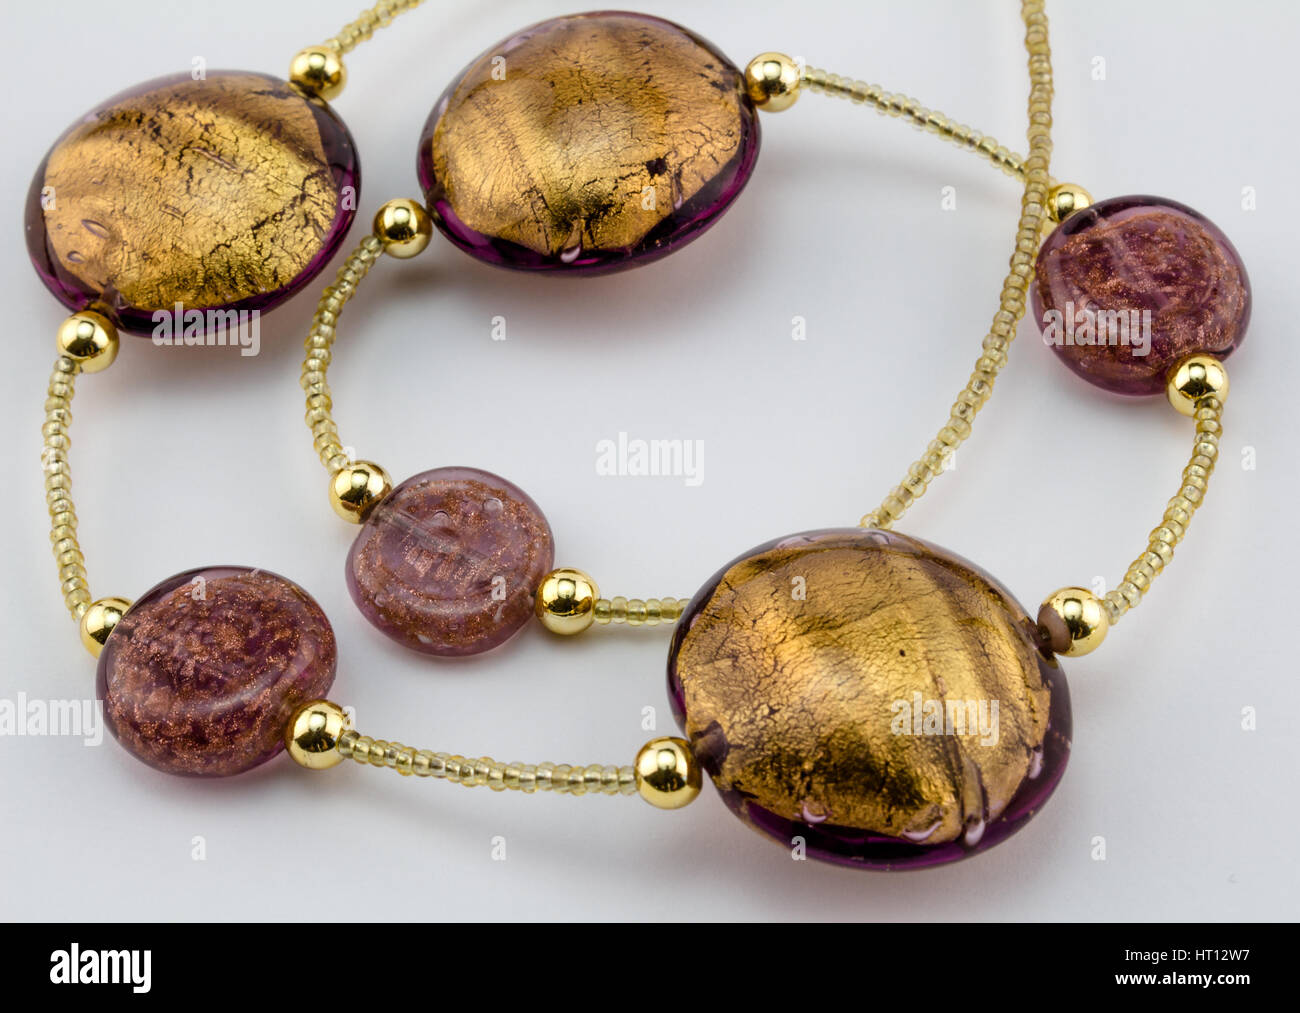 Glass - Murano gold bead necklace close up on white background - Stock Image